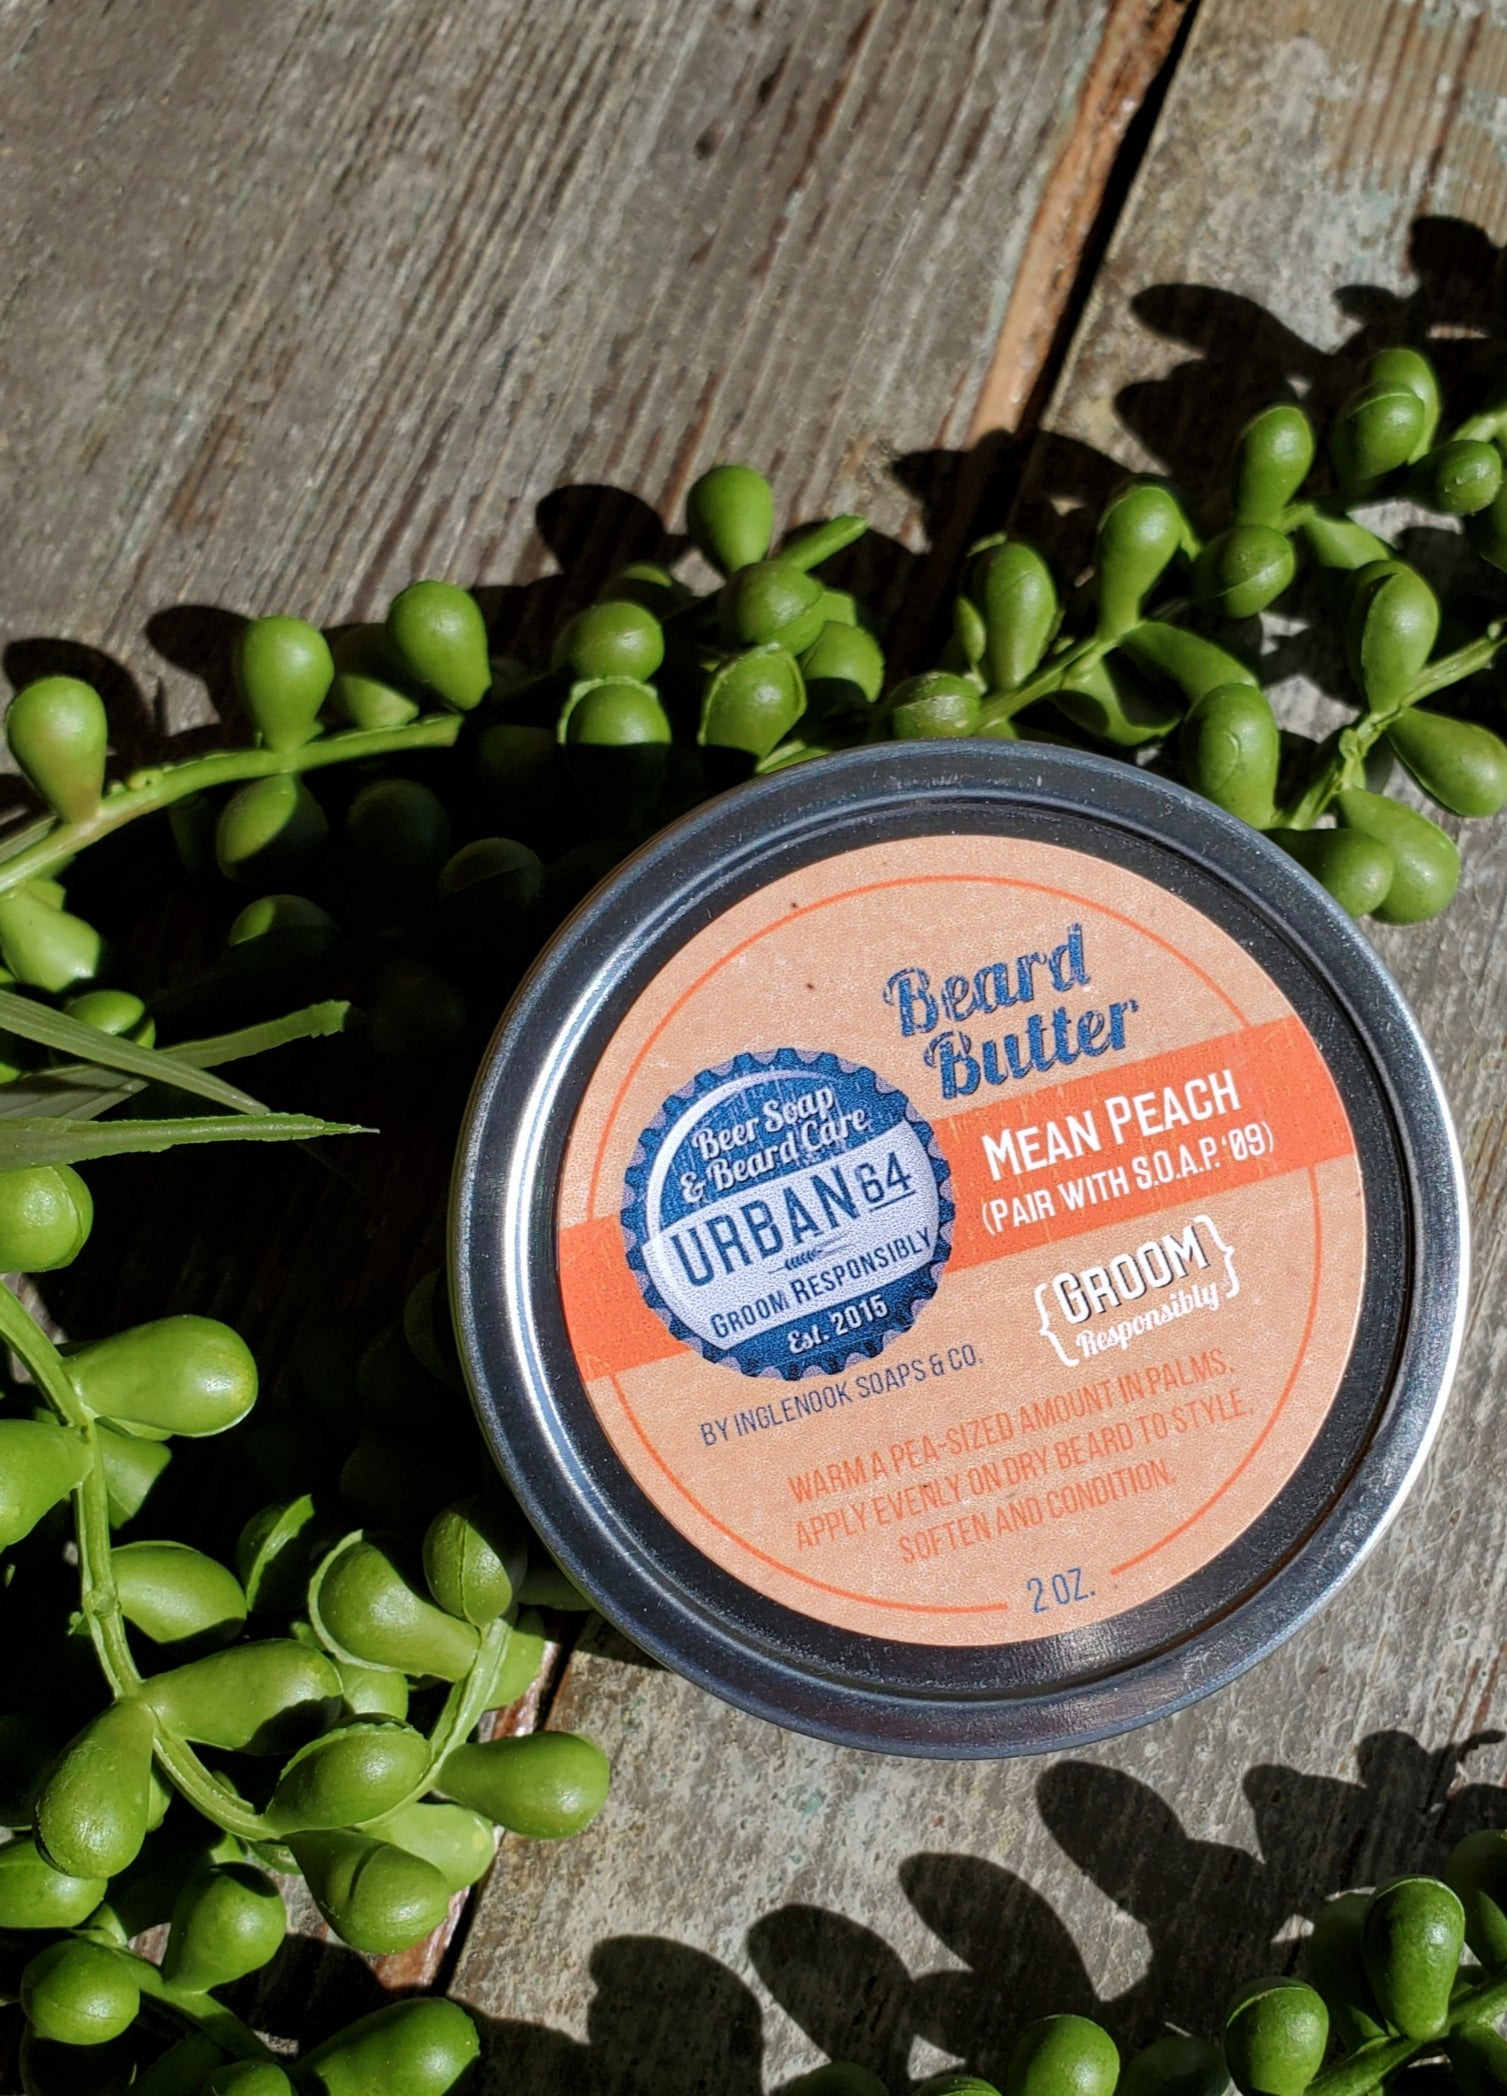 Mean Peach - Urban 64 Beard Butter